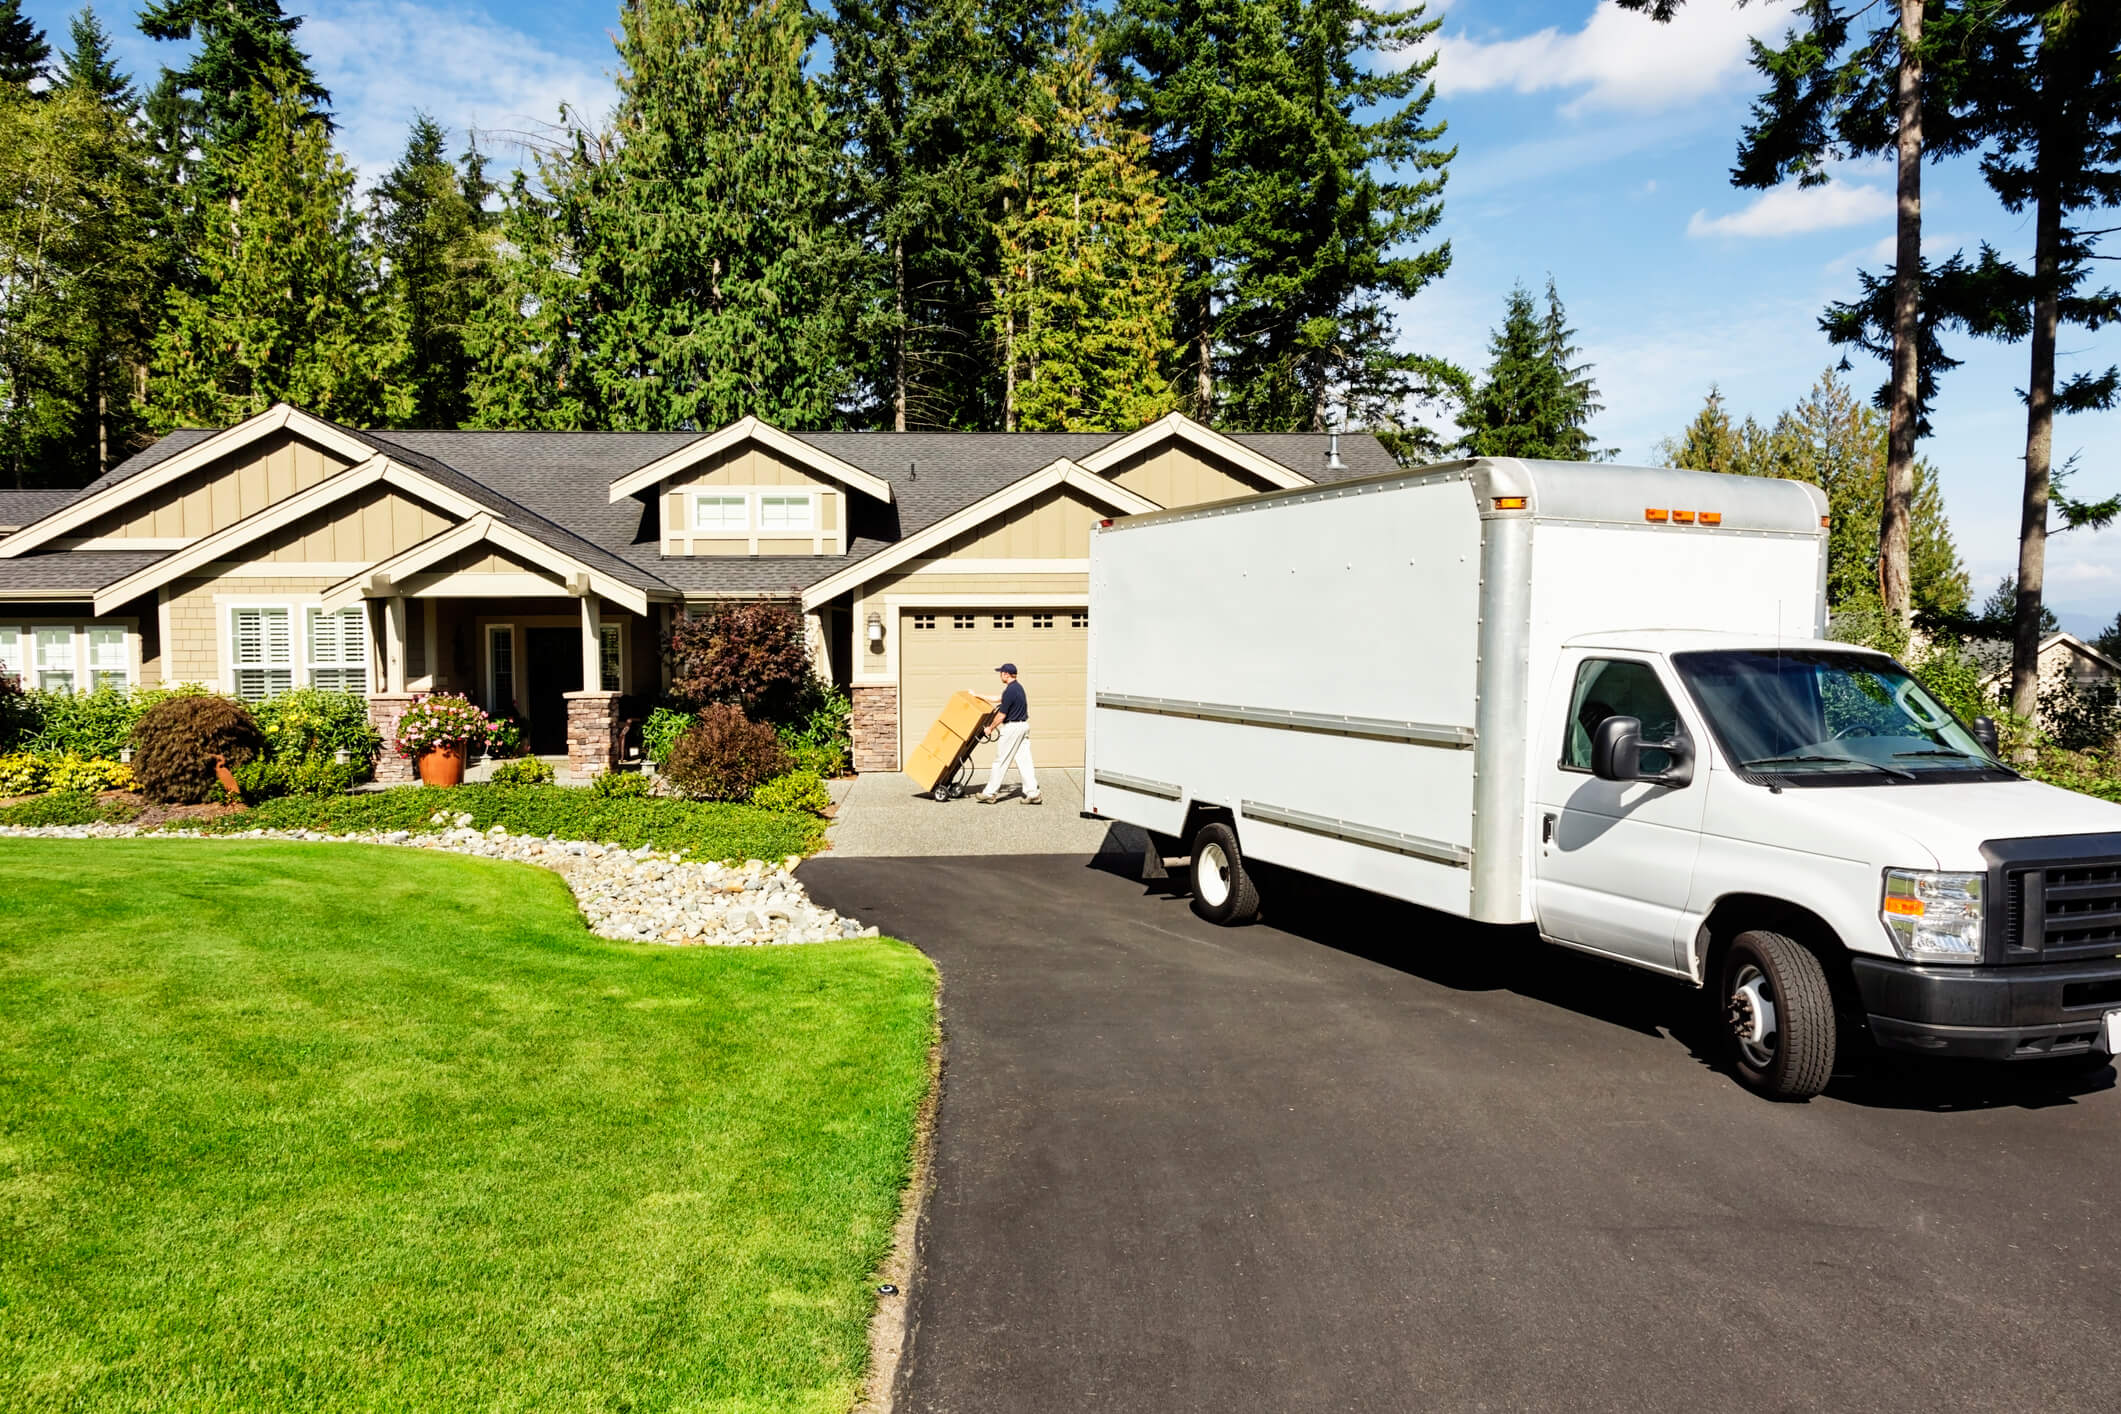 Home Depot Moving Truck Rental Review: How Does It Work?